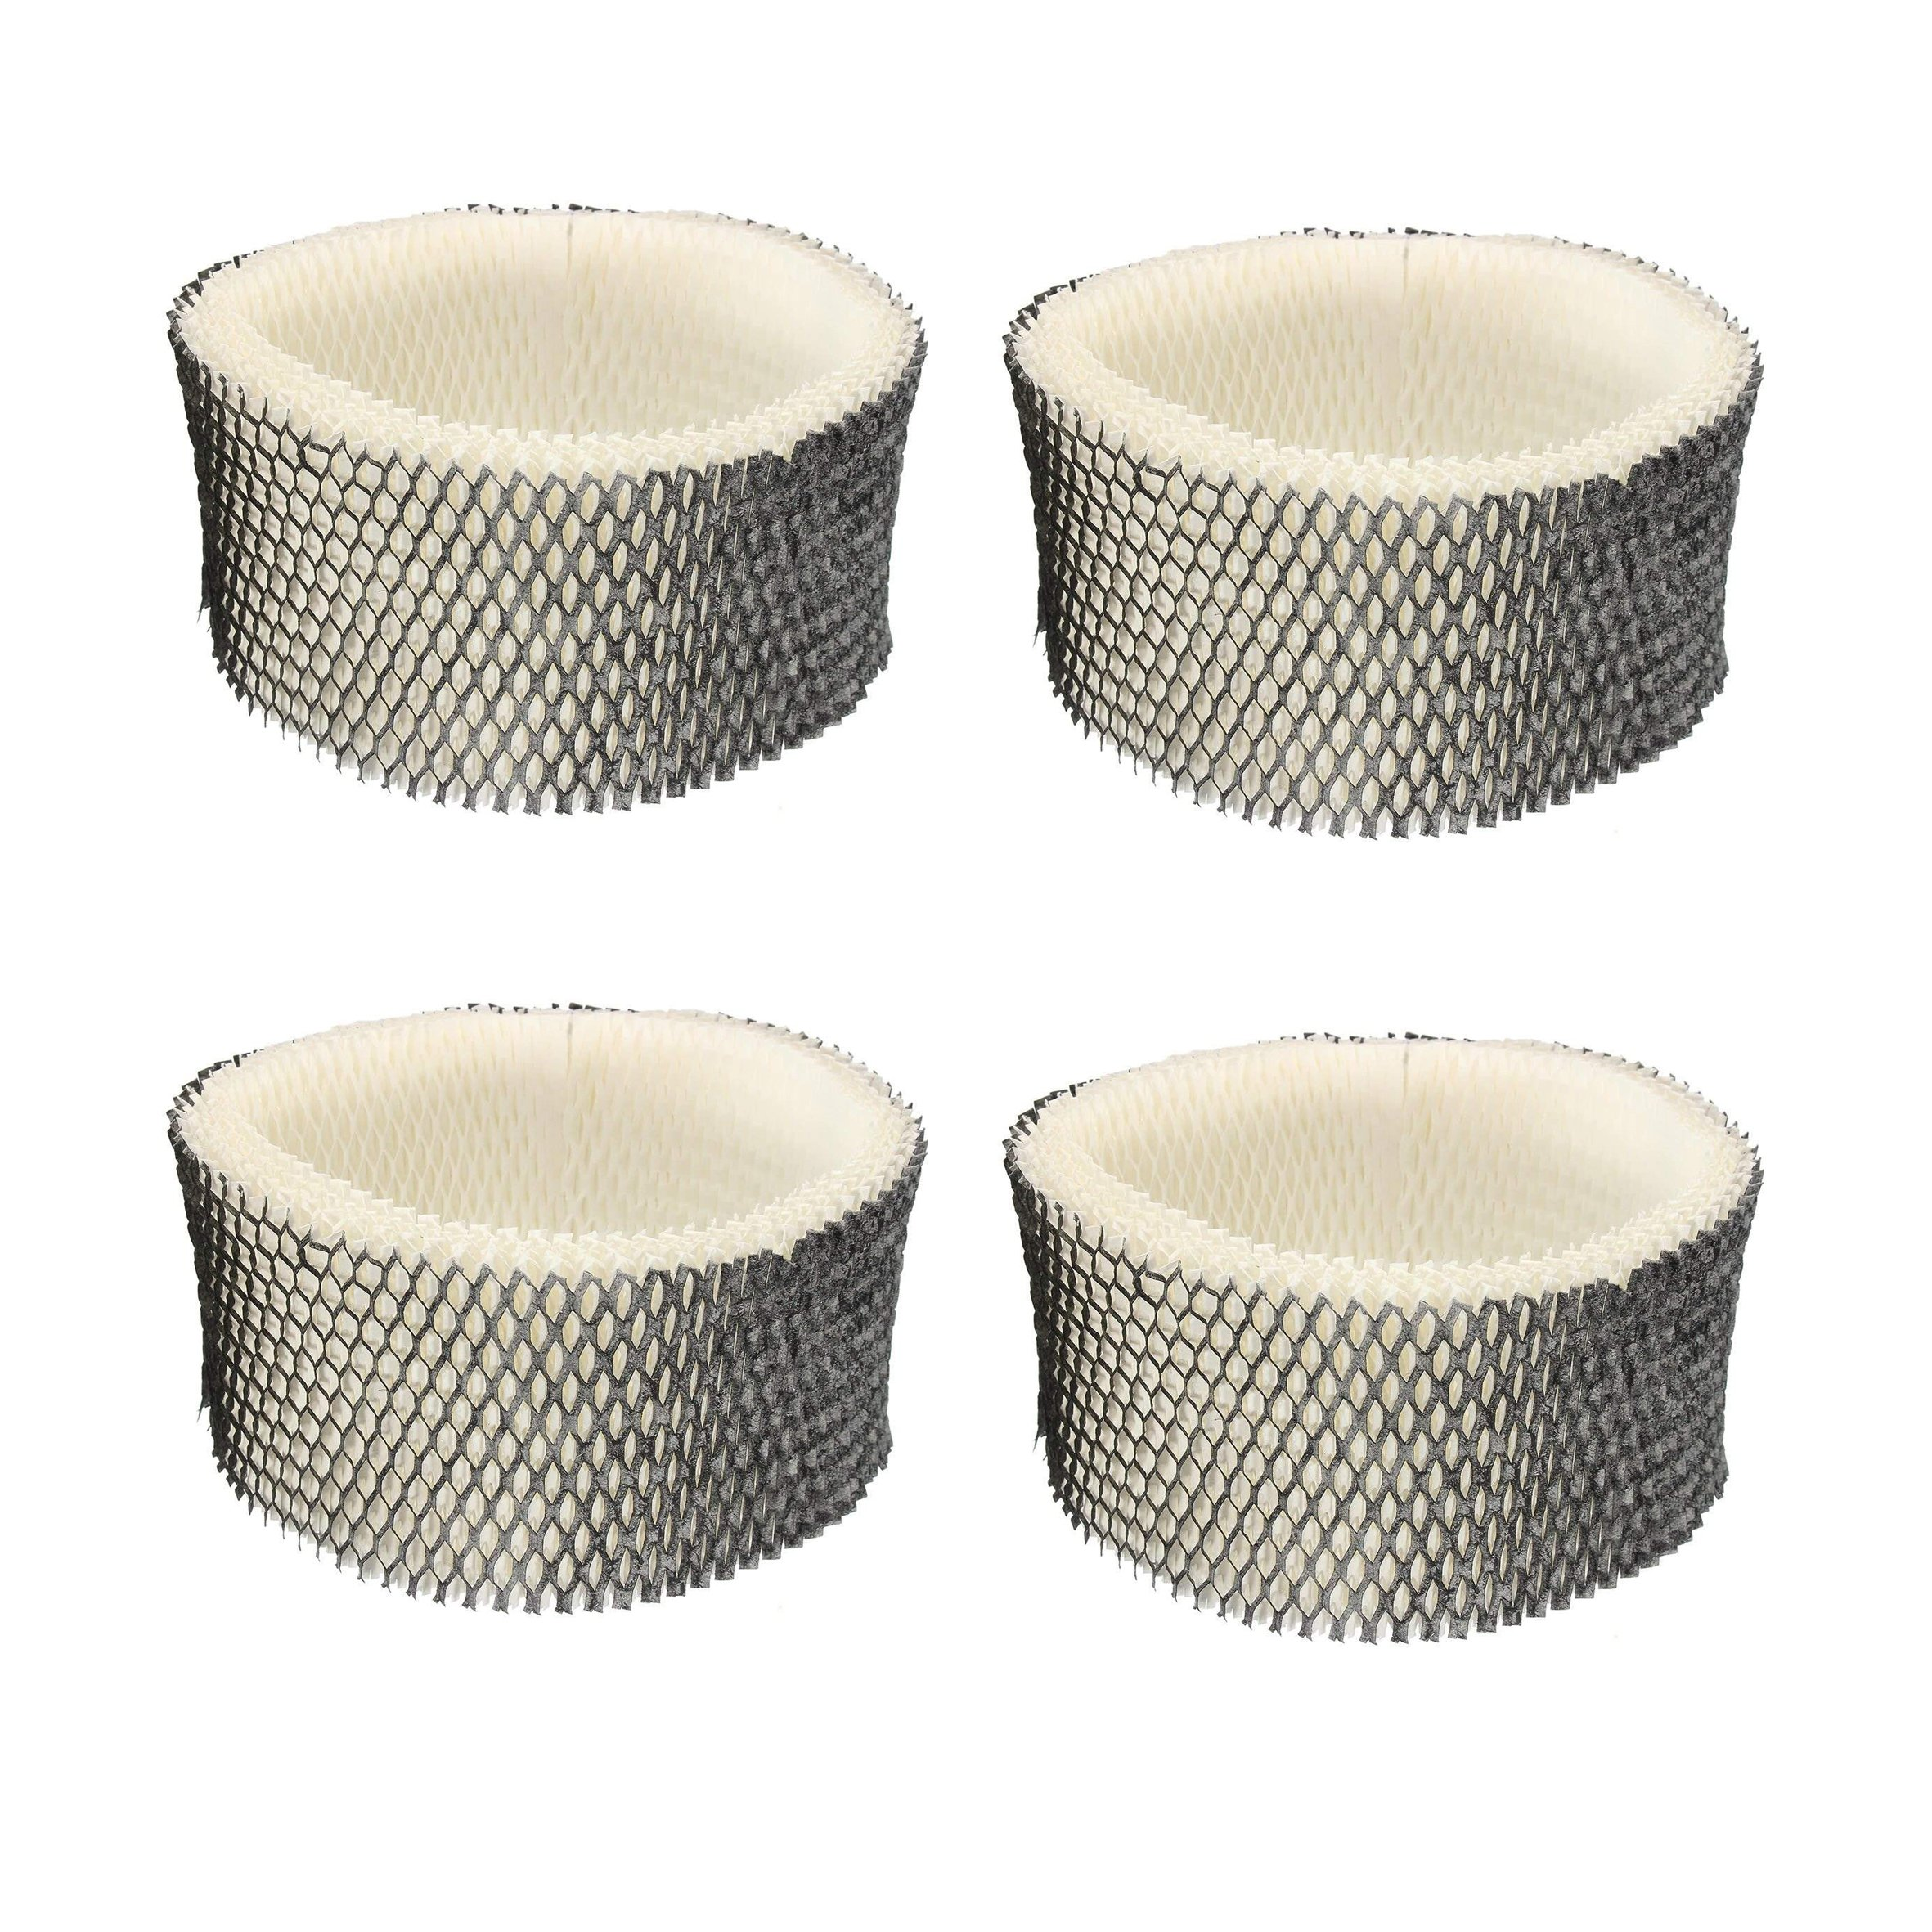 Podoy HWF62 Humidifier Filter for Holmes HM1300 SCM1100 HM1761 HWF-62 Filter Replacement (4 Pack)